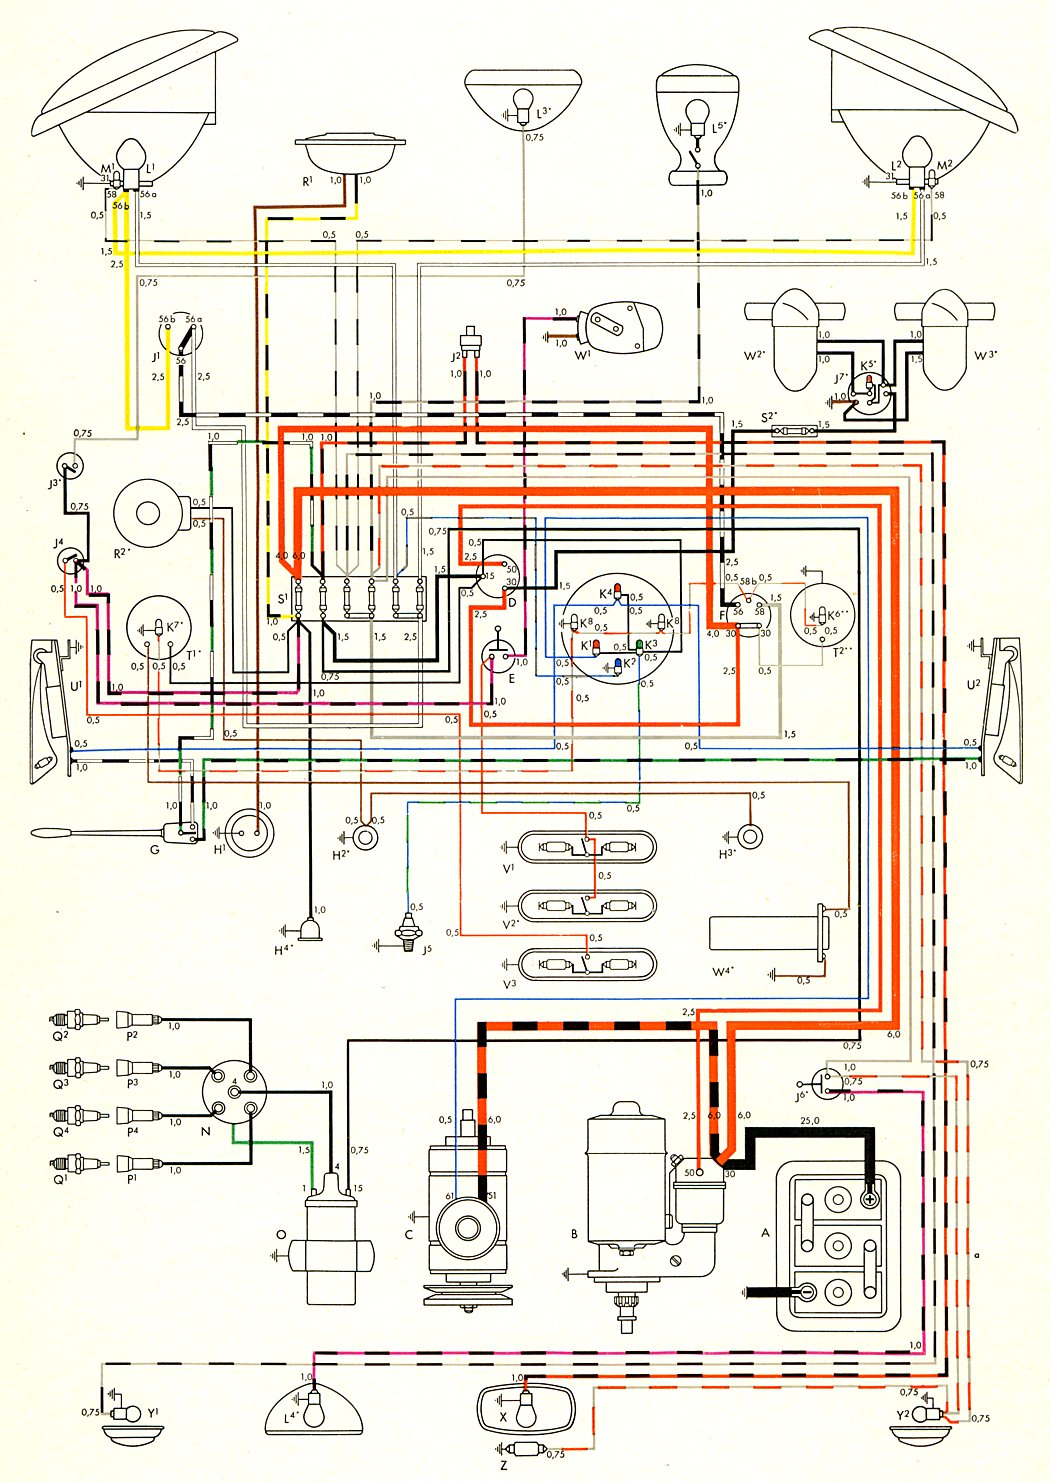 bus_nov57 thesamba com type 2 wiring diagrams bus wiring diagrams at eliteediting.co